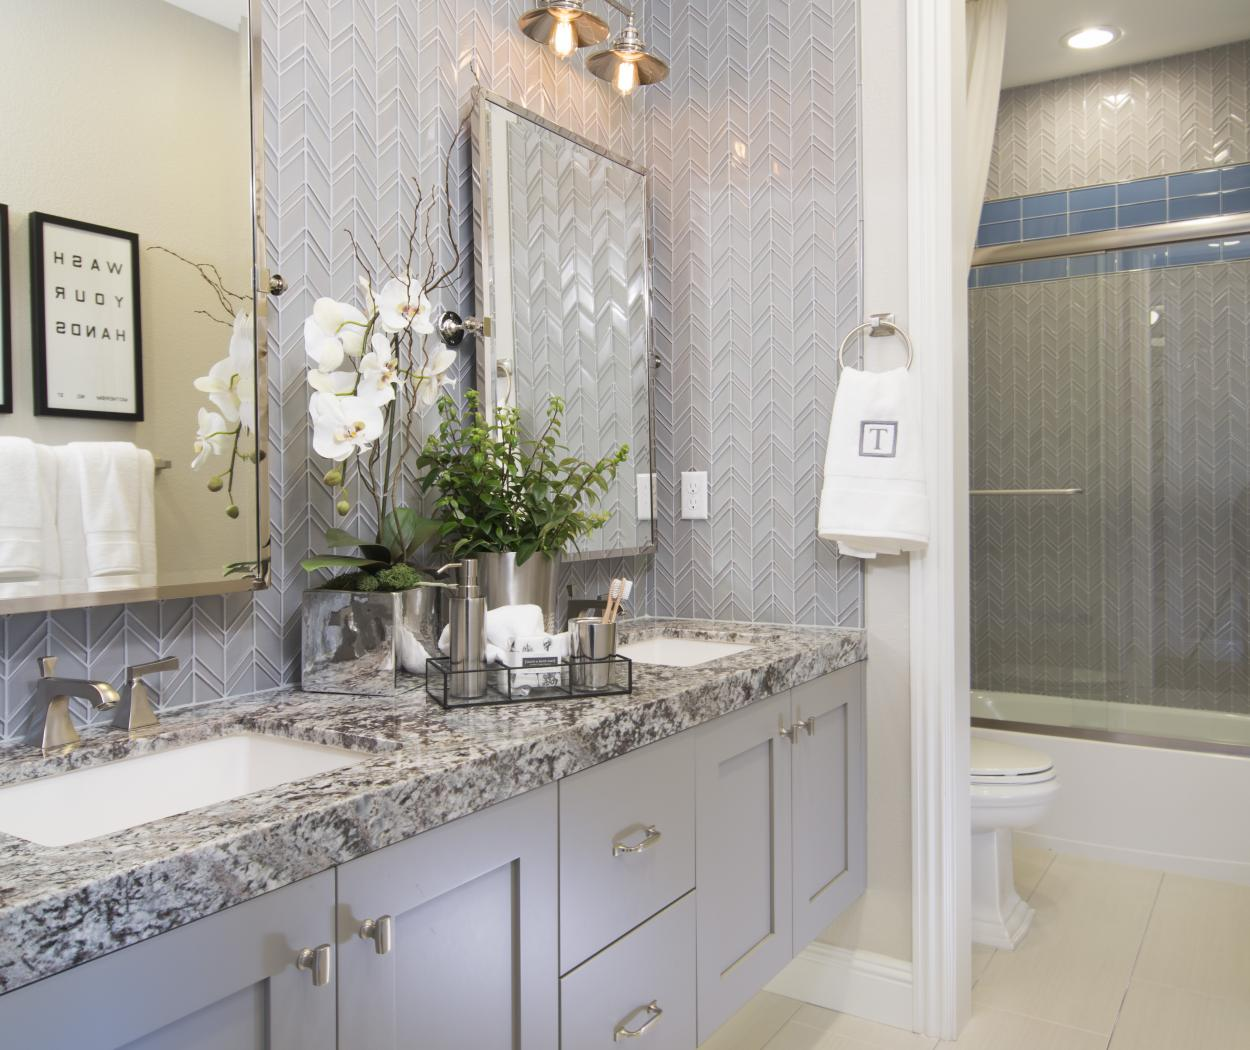 Transitional Painted Master Bathroom with a Beautiful Granite Counter Top, Double Sinks, Silver Faucets, Knobs and Pulls